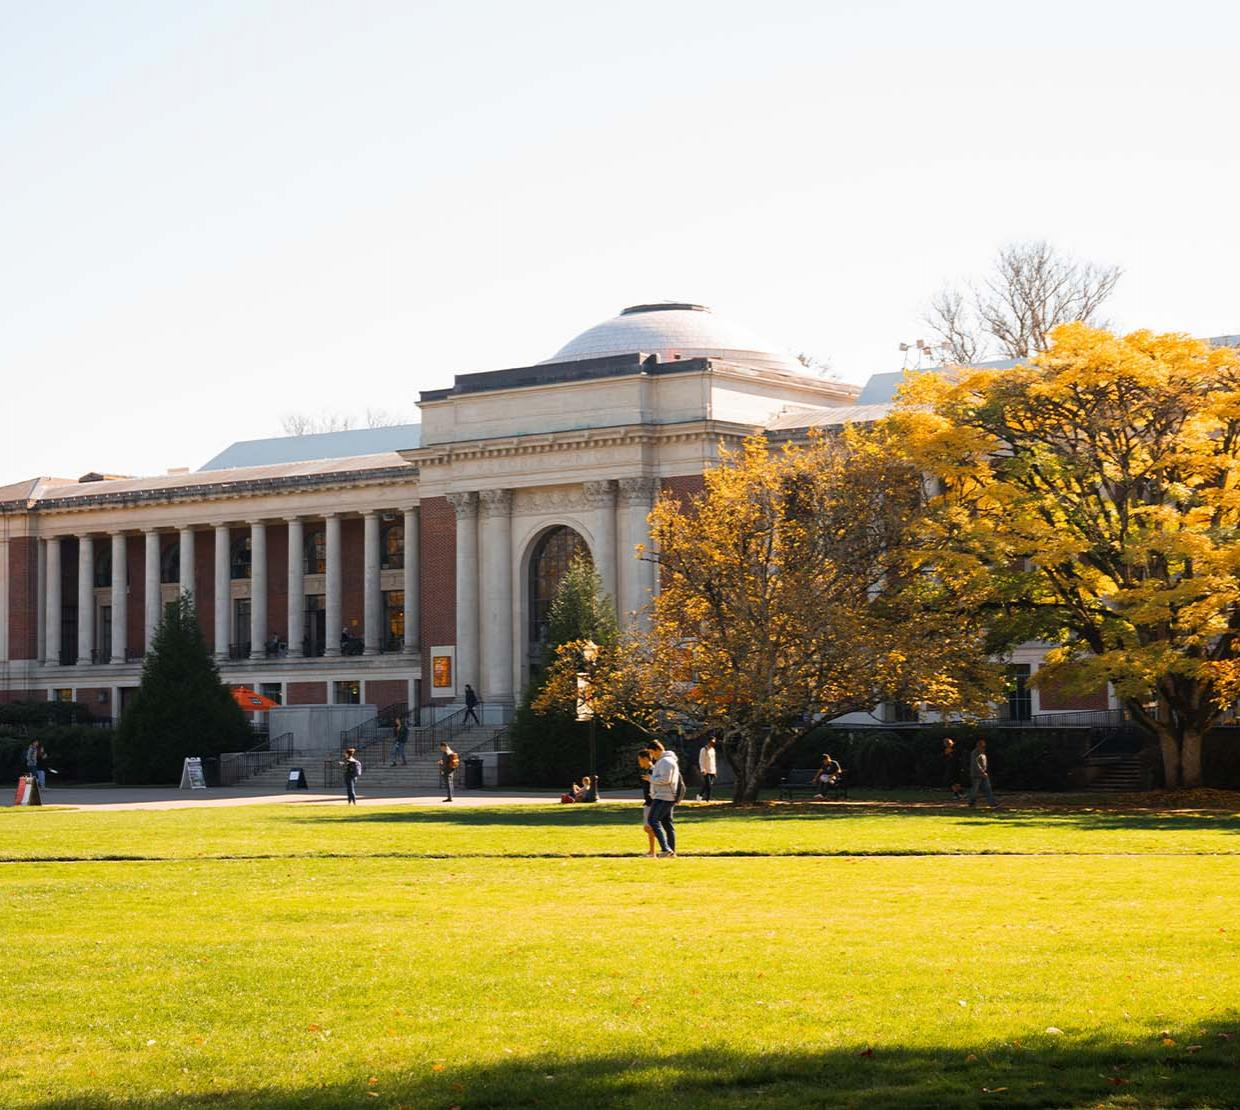 The Memorial Union on a sunny autumn day.